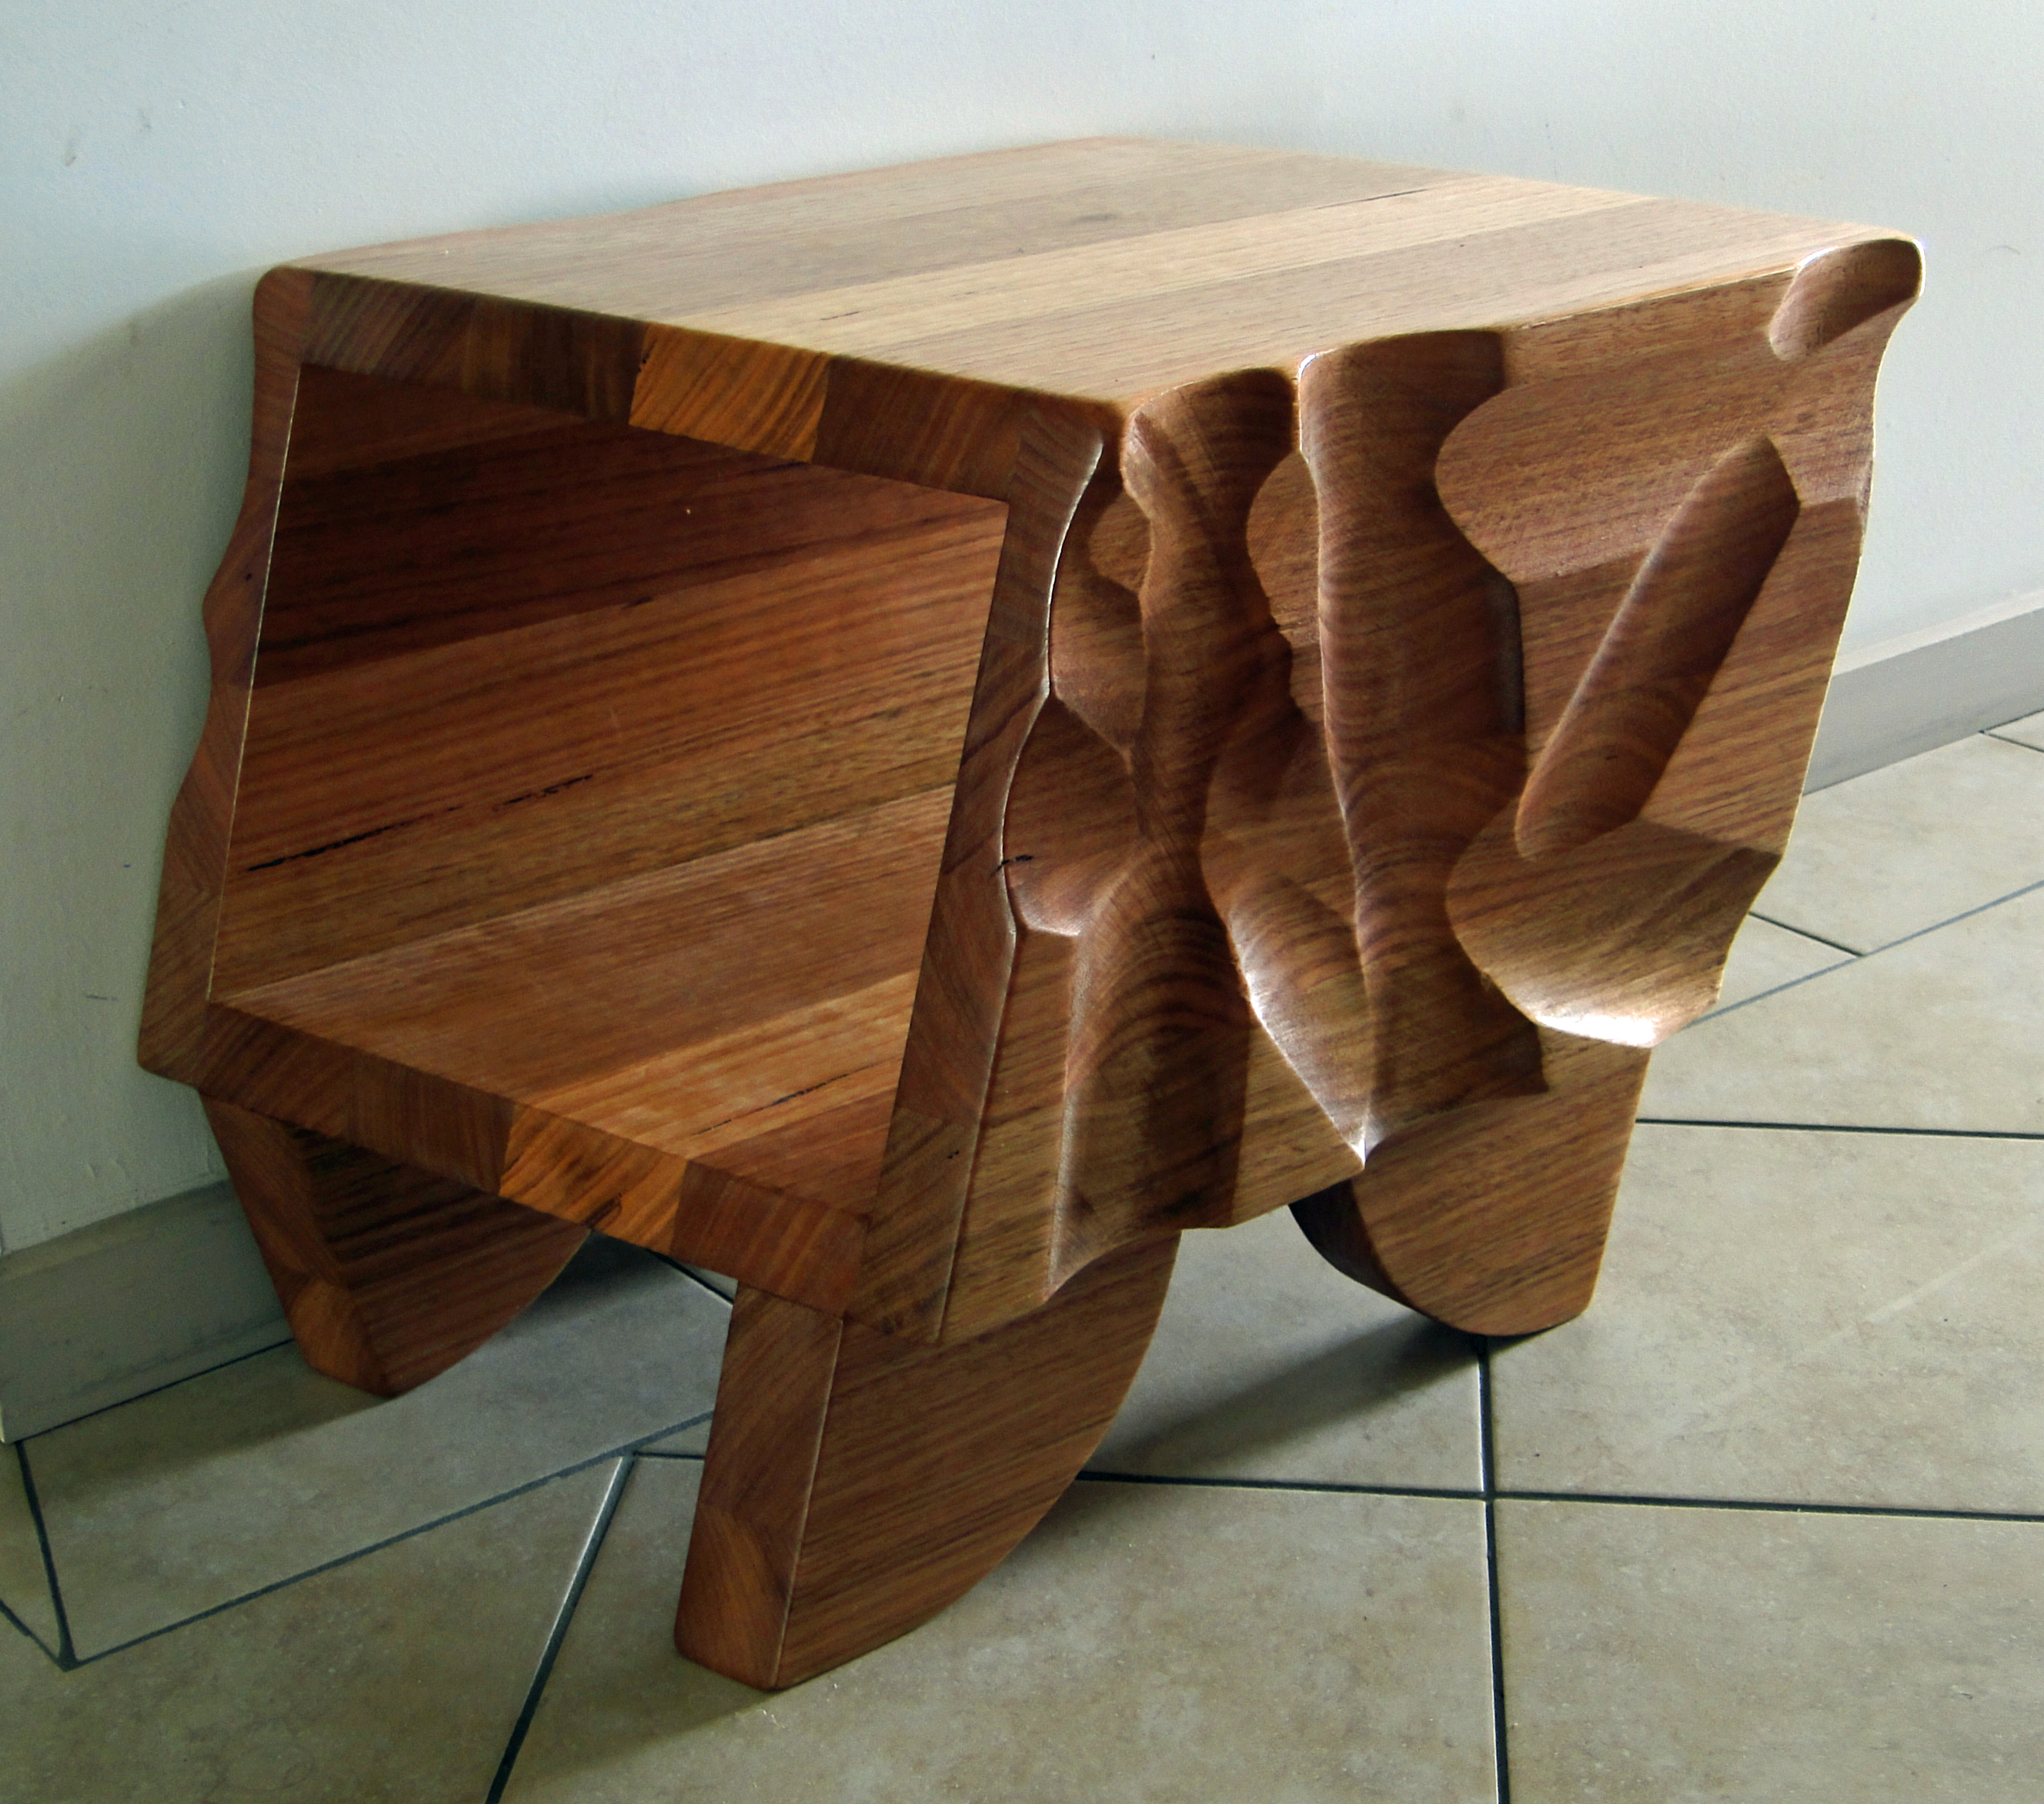 Textured coffee table